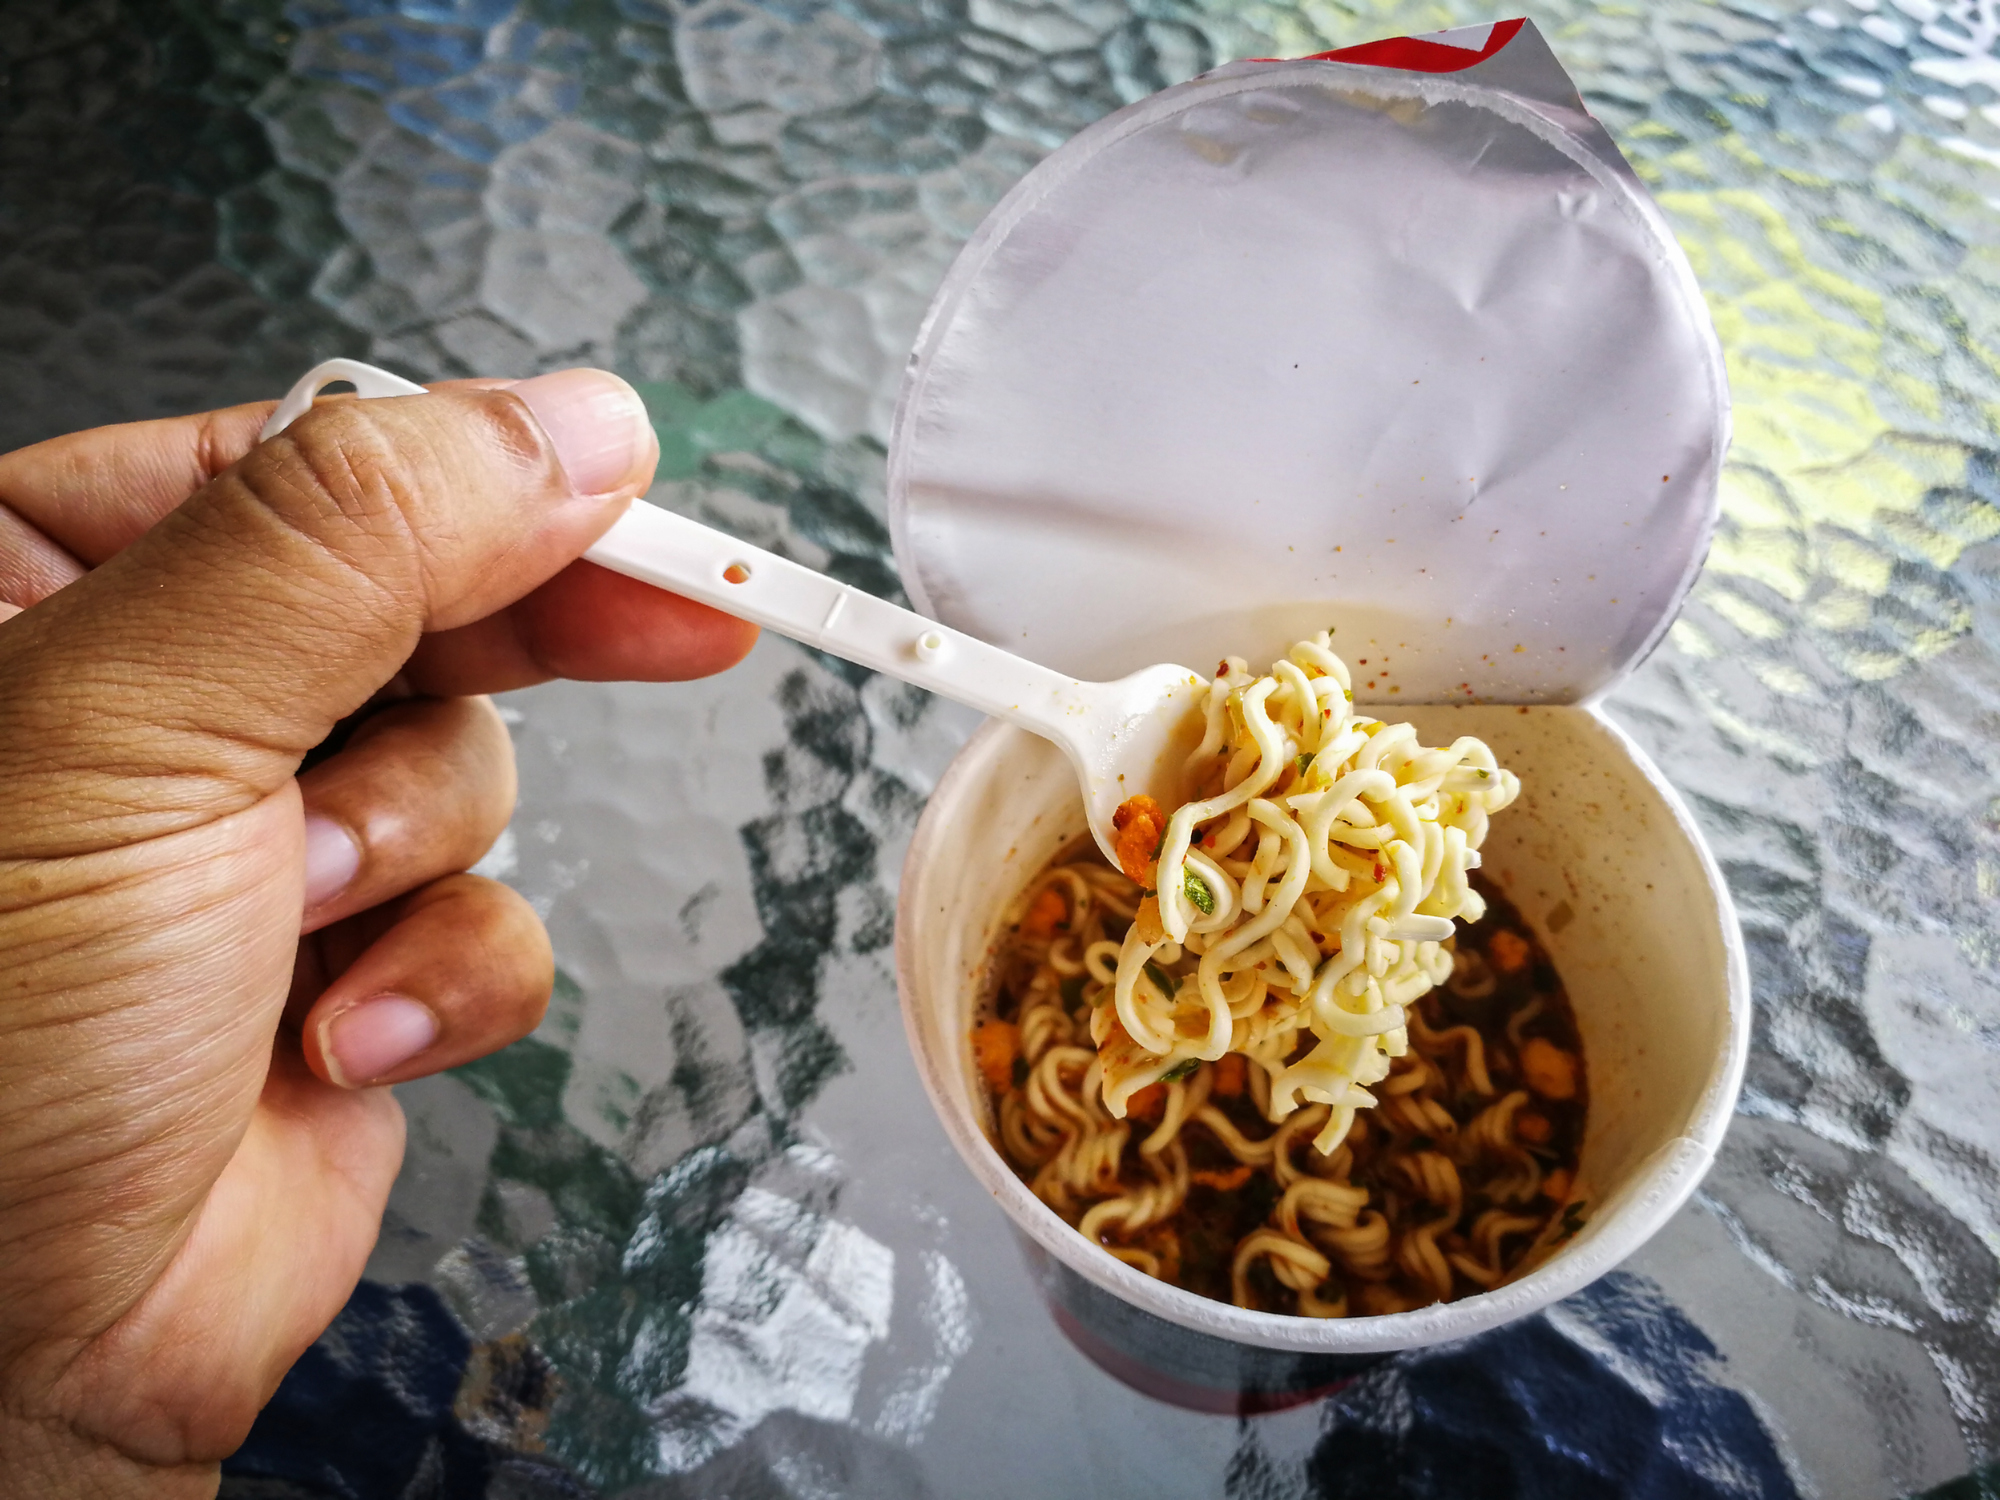 Hot and Spicy Instant cup noodles with shrimp on glass table